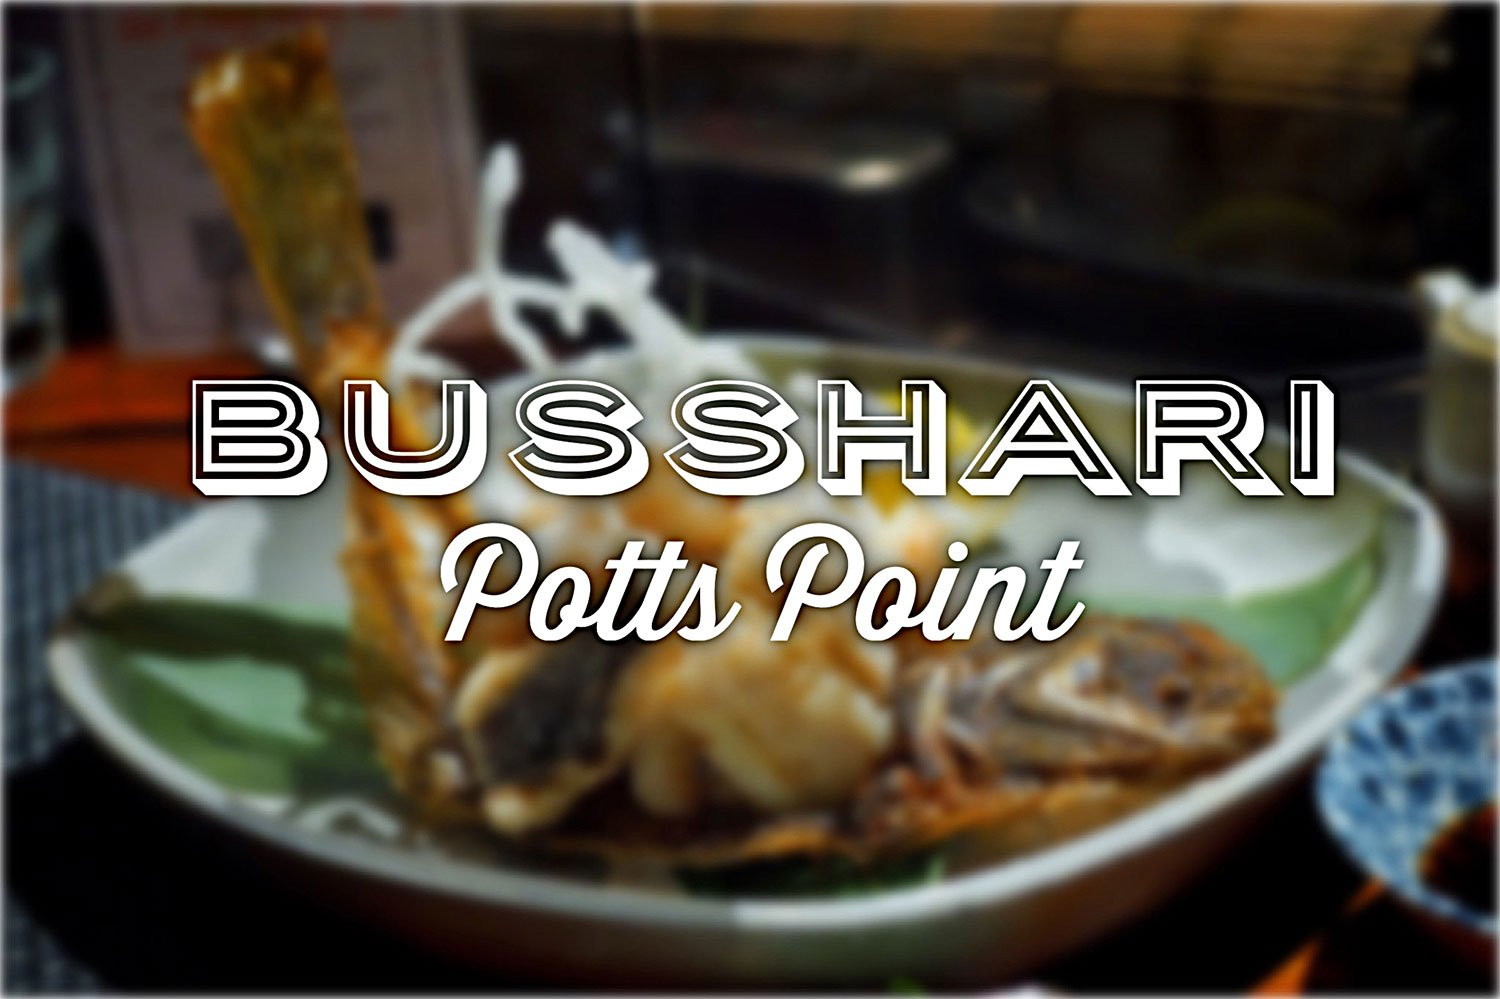 Sydney Food Blog Review of Busshari, Potts Point